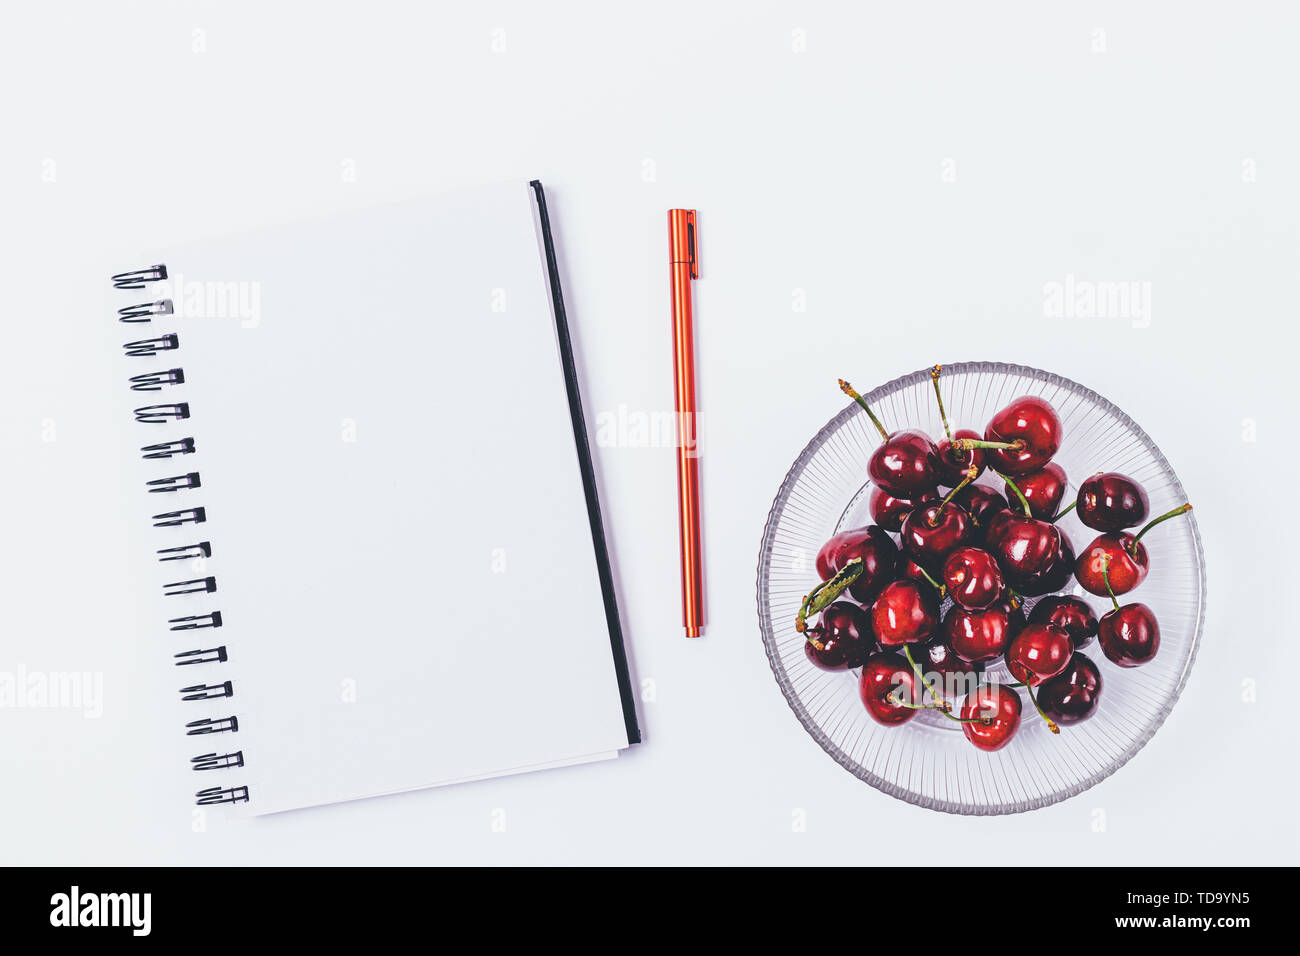 Top view of desk with empty notebook and pen next to healthy snack of fresh cherries, flat lay on white background. - Stock Image